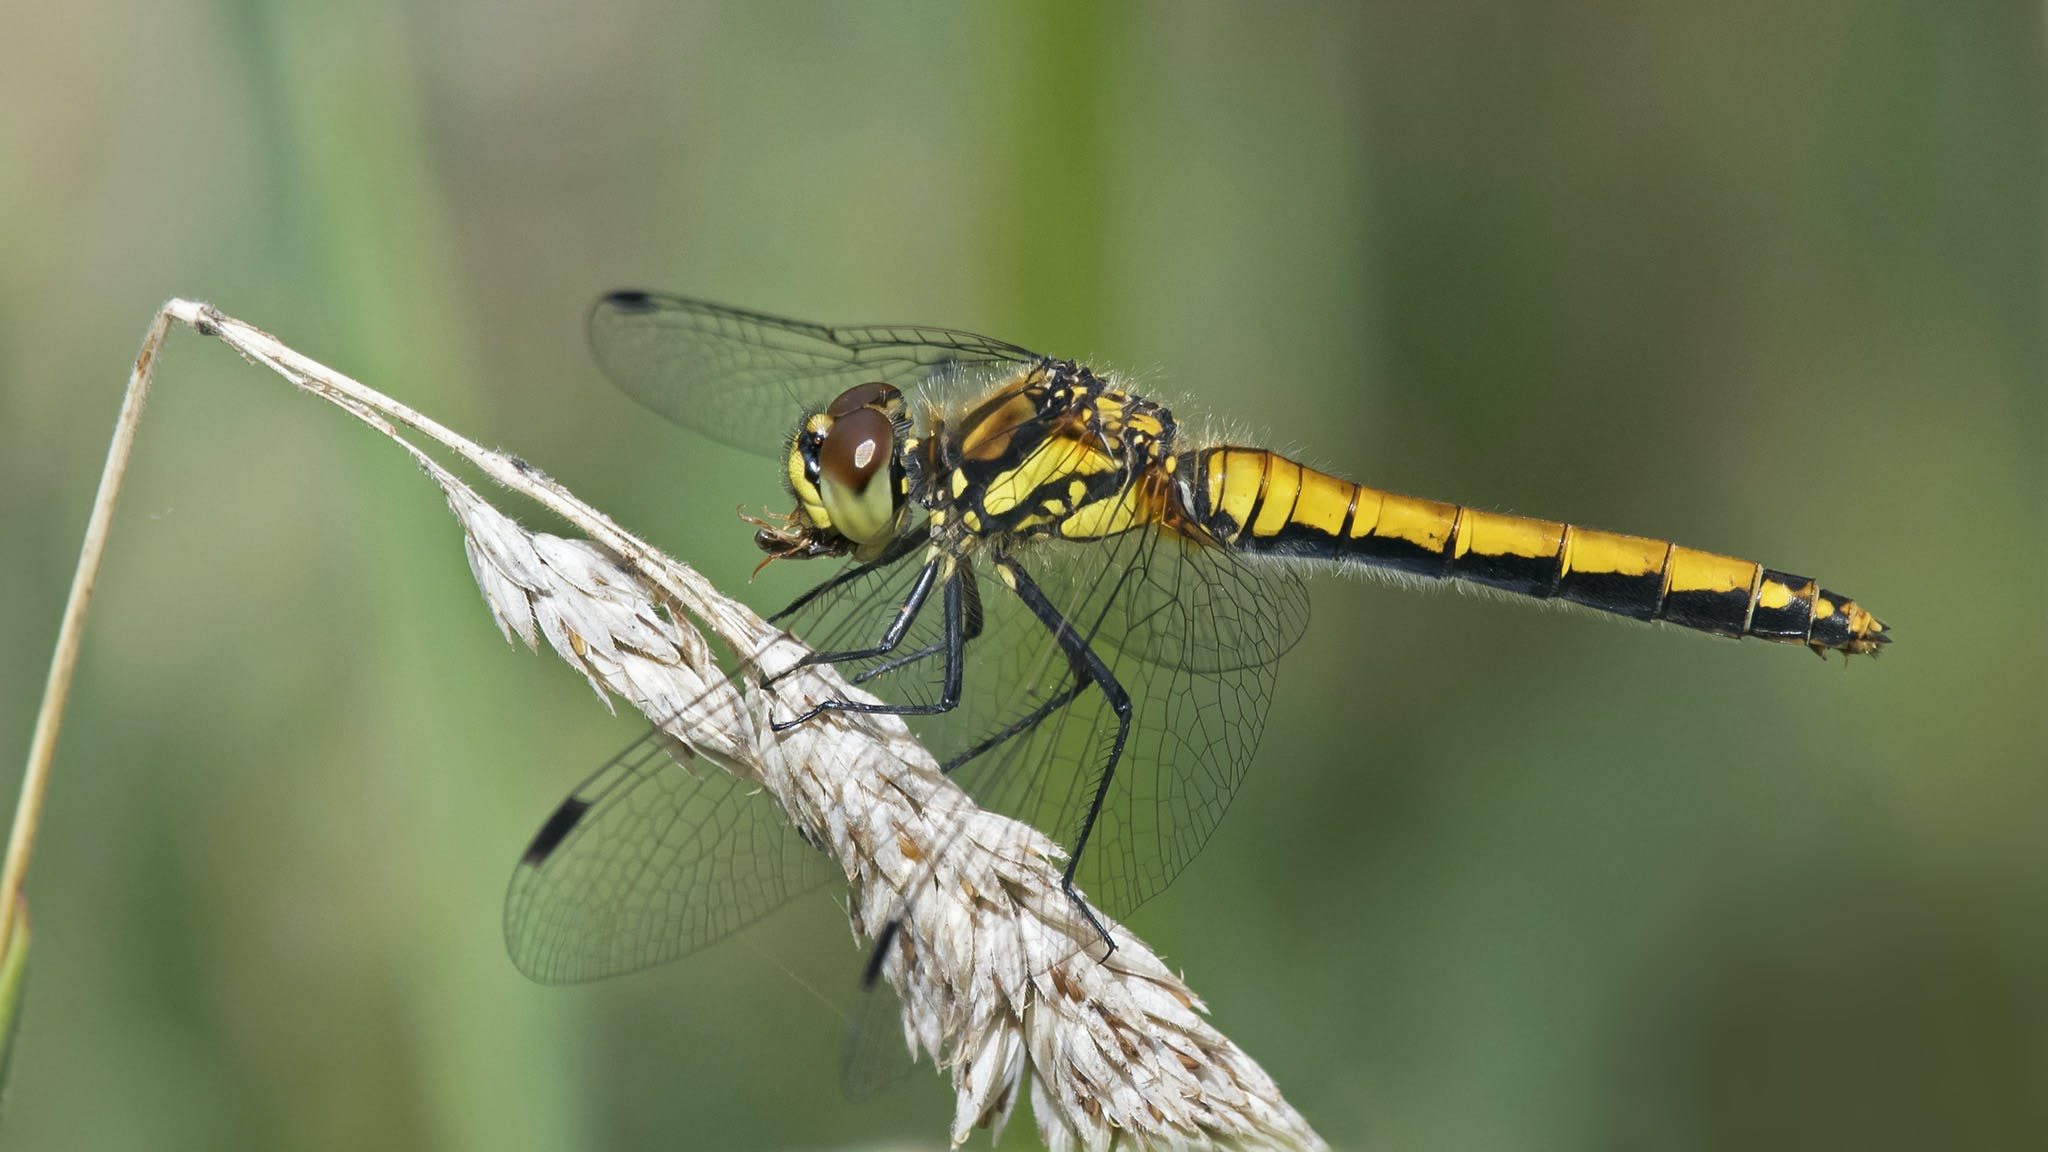 Free stock photo of Black Darter, dragonfly, eating, insect